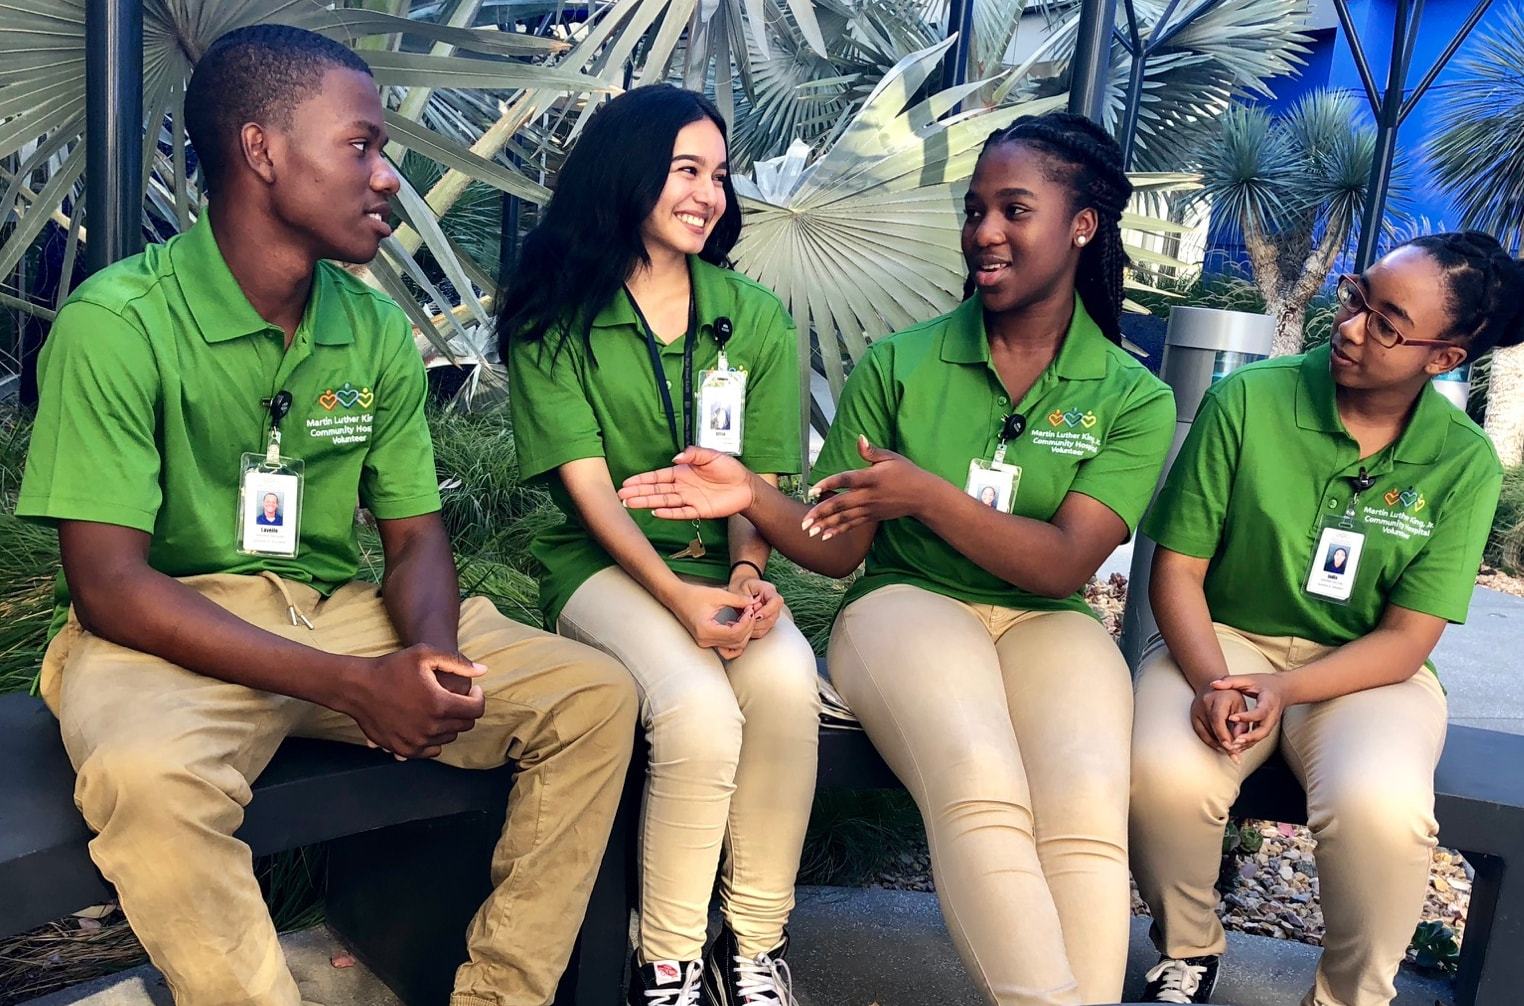 Four high school volunteers wearing green t-shirts sitting next to each other talking